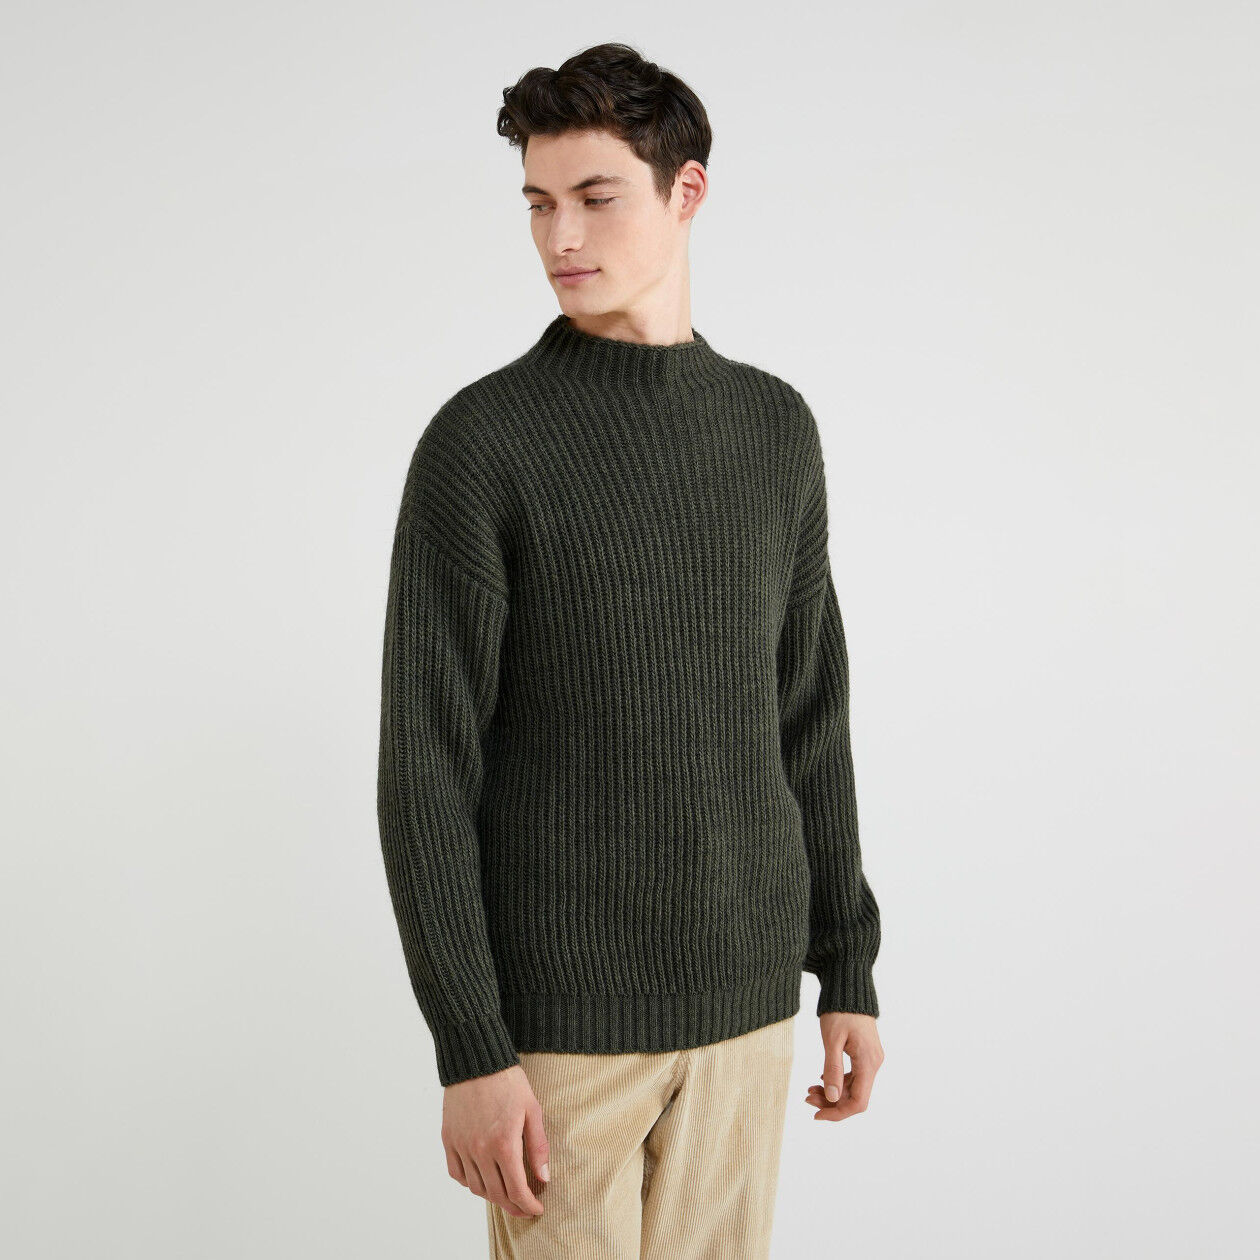 Turtleneck sweater in wool and alpaca